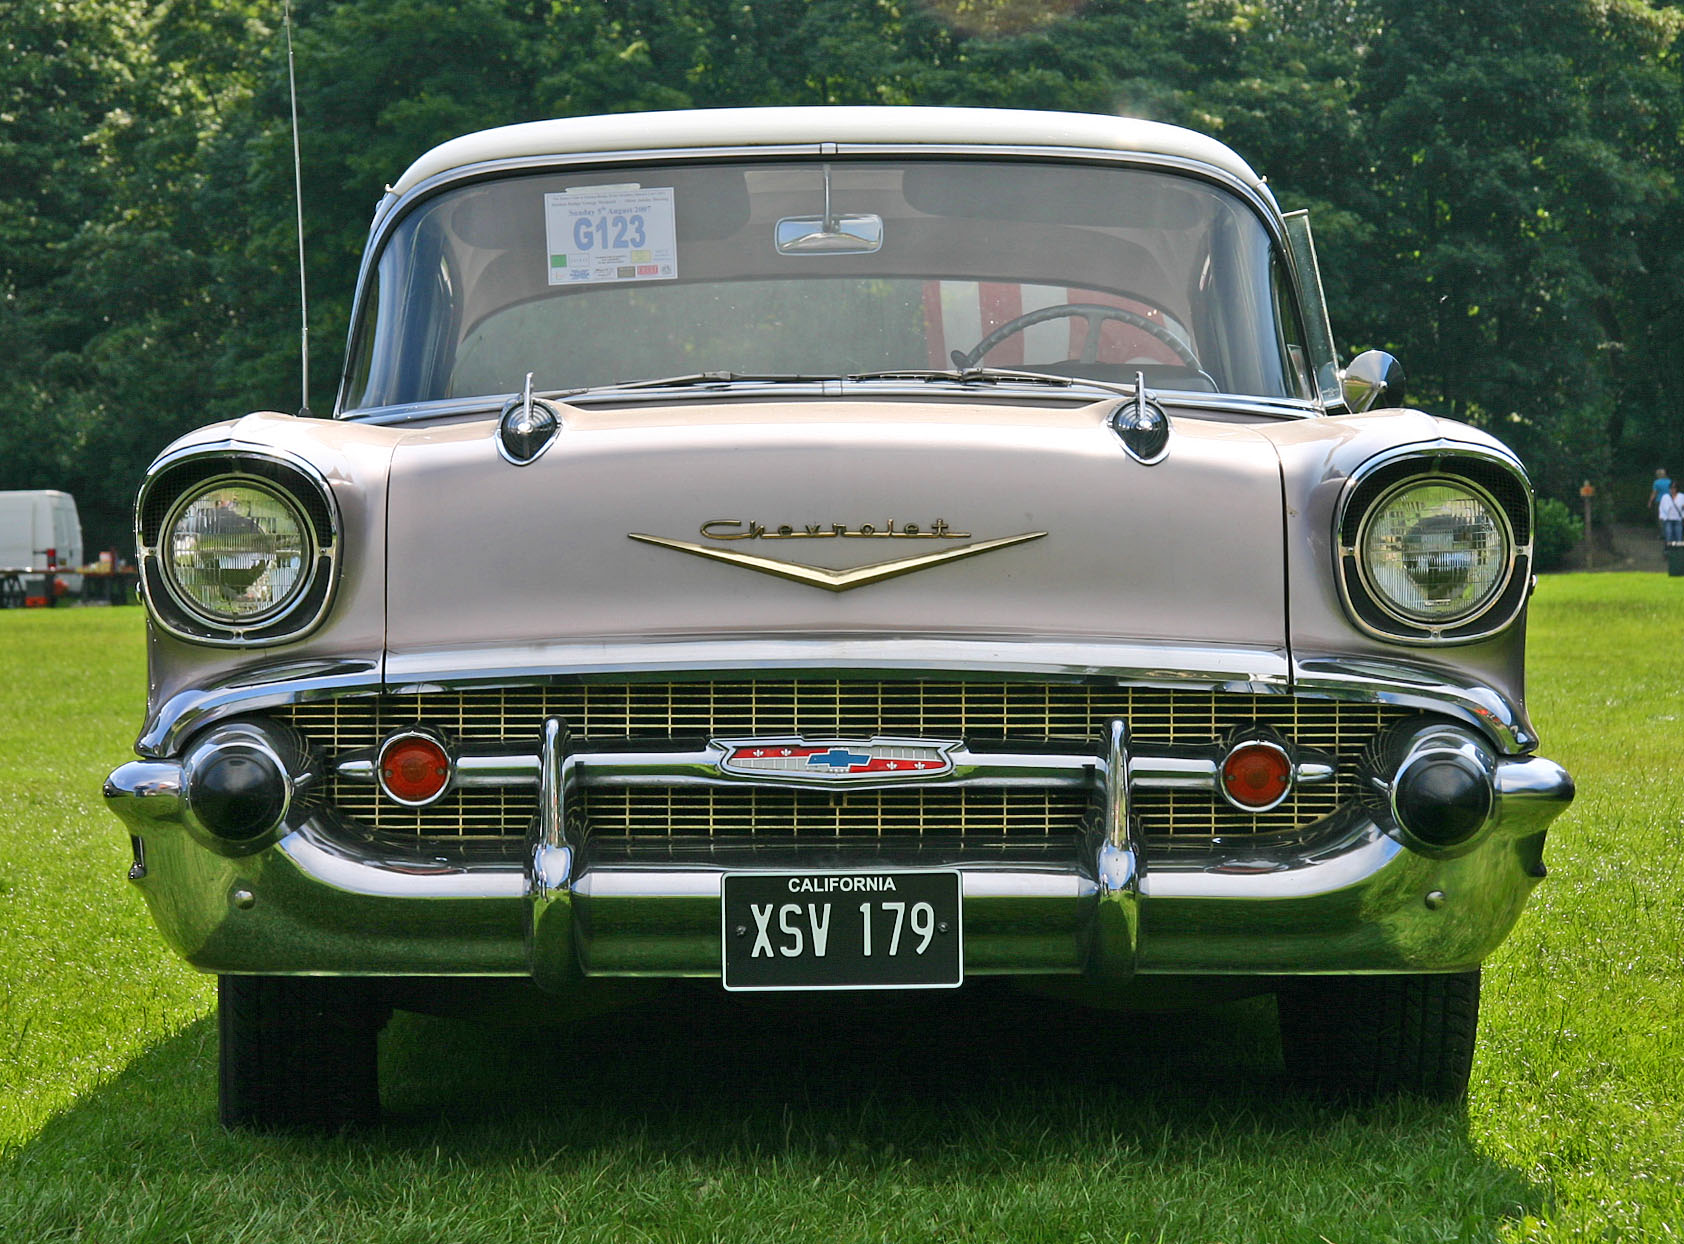 1957 Chevrolet Bel Air Information And Photos Momentcar Chevy Convertible Lowrider 8